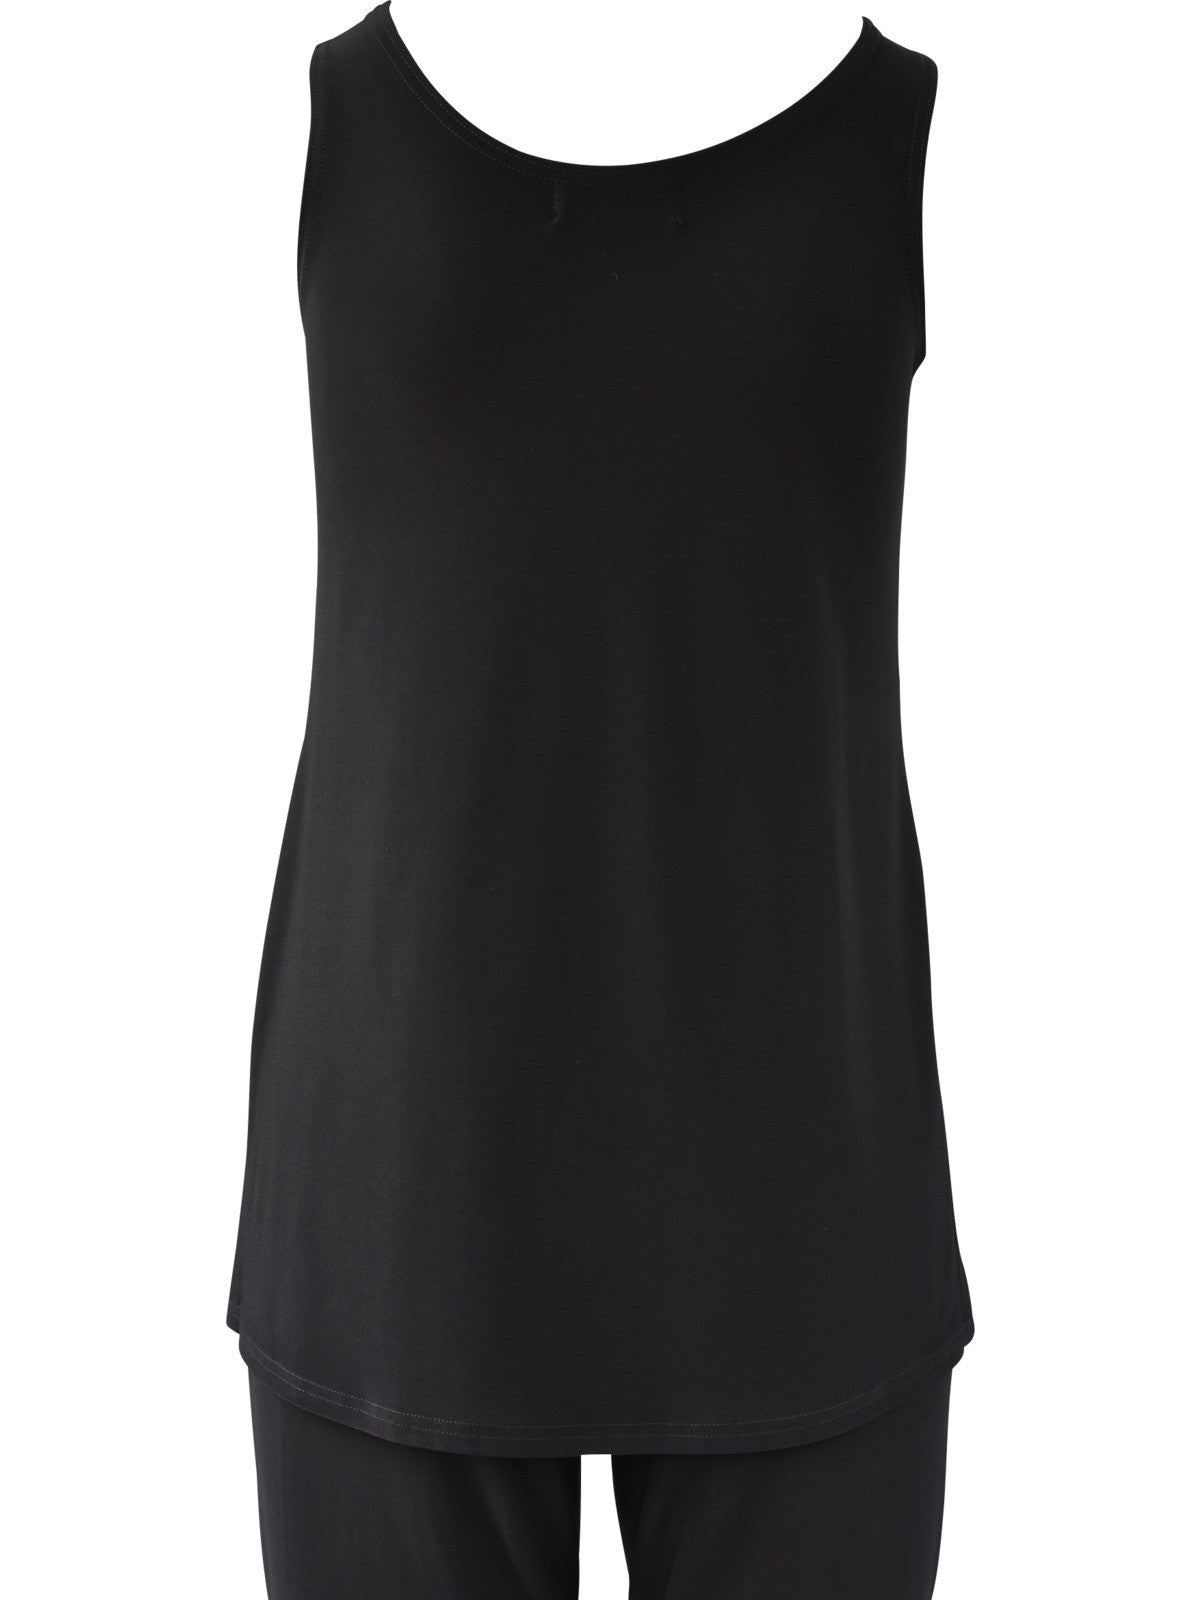 Sympli Go To Tank Relax - Black - Statement Boutique